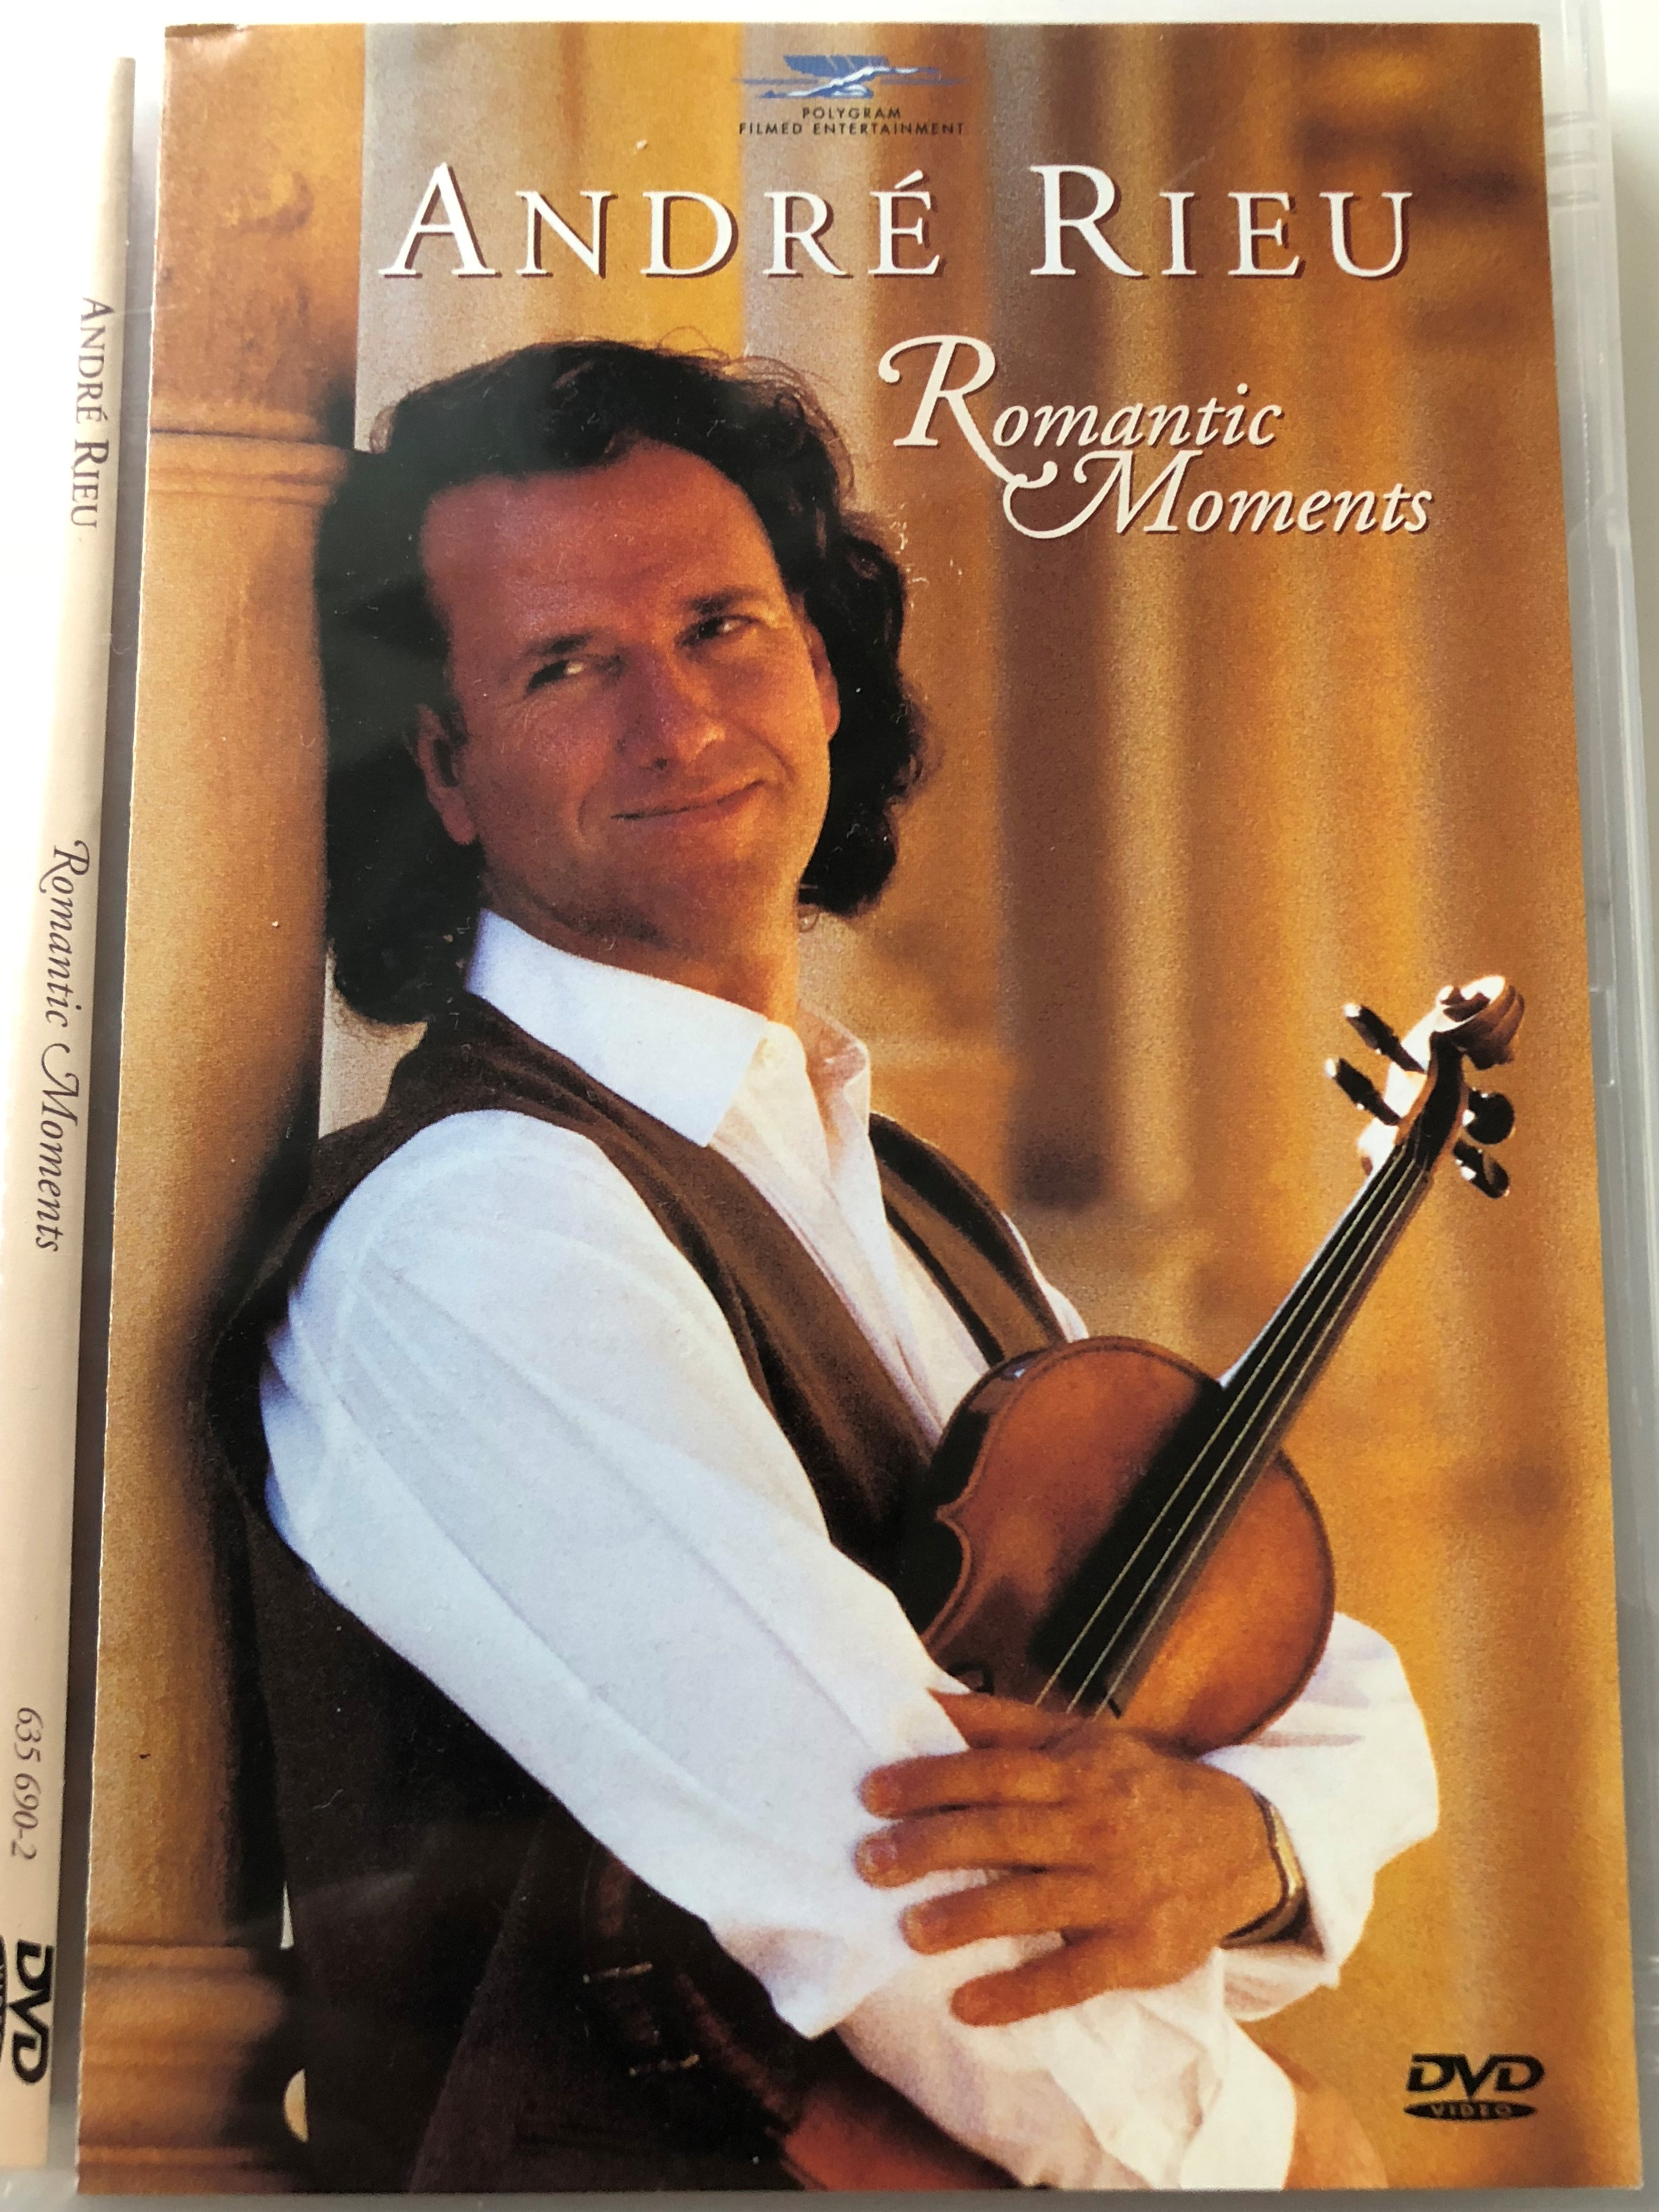 andr-rieu-romantic-moments-dvd-1999-sph-renkl-nge-music-of-the-spheres-anton-n-dvo-k-lied-an-den-mond-giacomo-puccini-o-mio-babbino-caro-1-.jpg